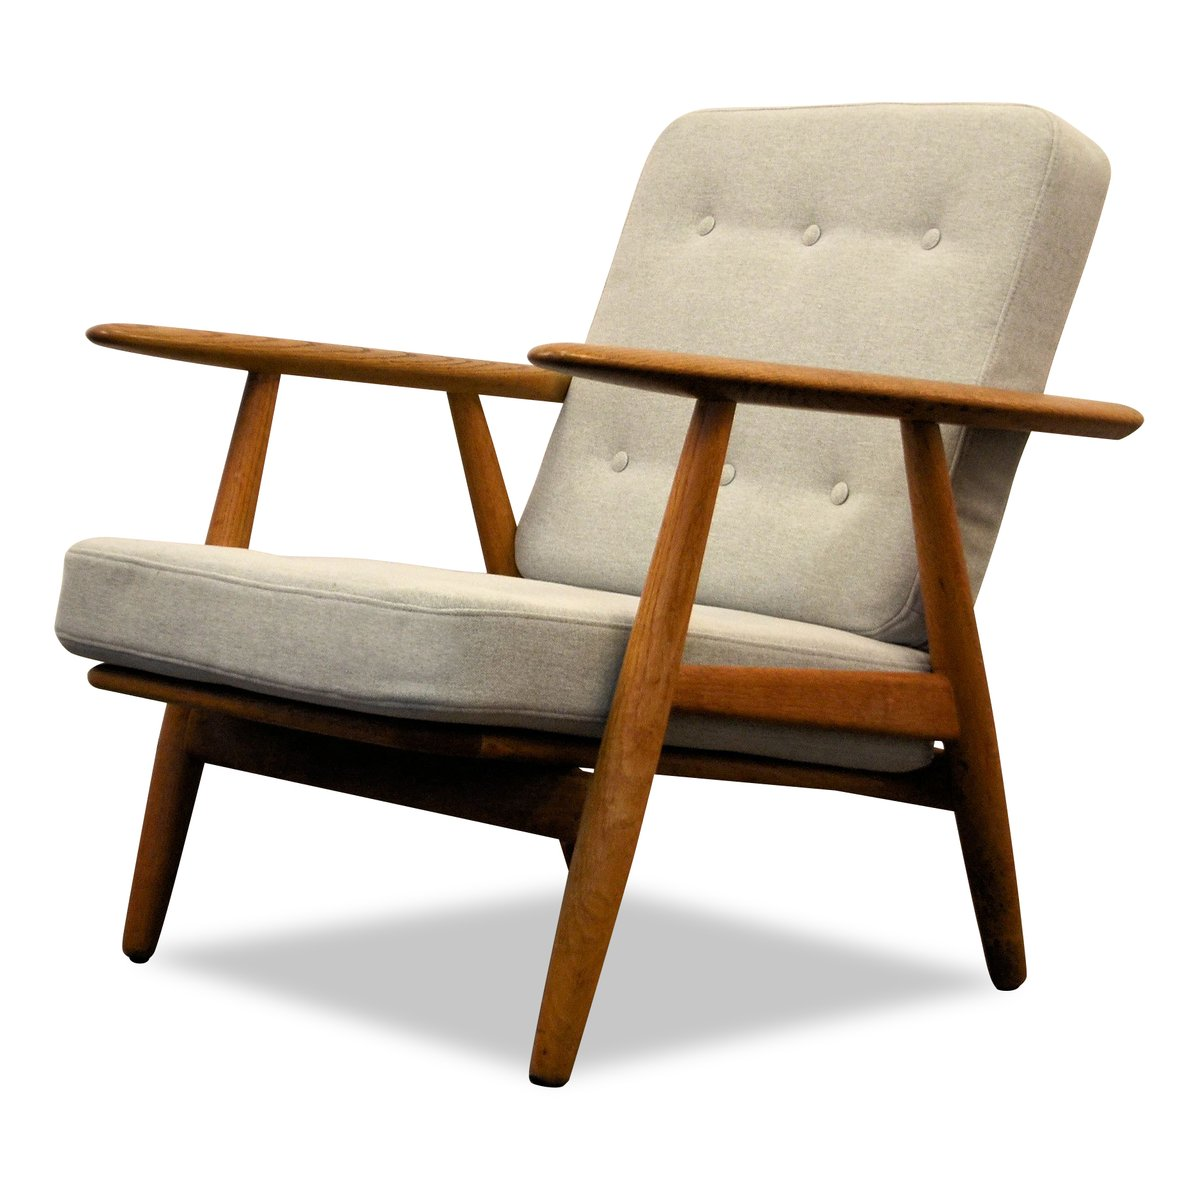 vintage oak cigar ge 240 lounge chair by hans j wegner for getama for sale at pamono. Black Bedroom Furniture Sets. Home Design Ideas